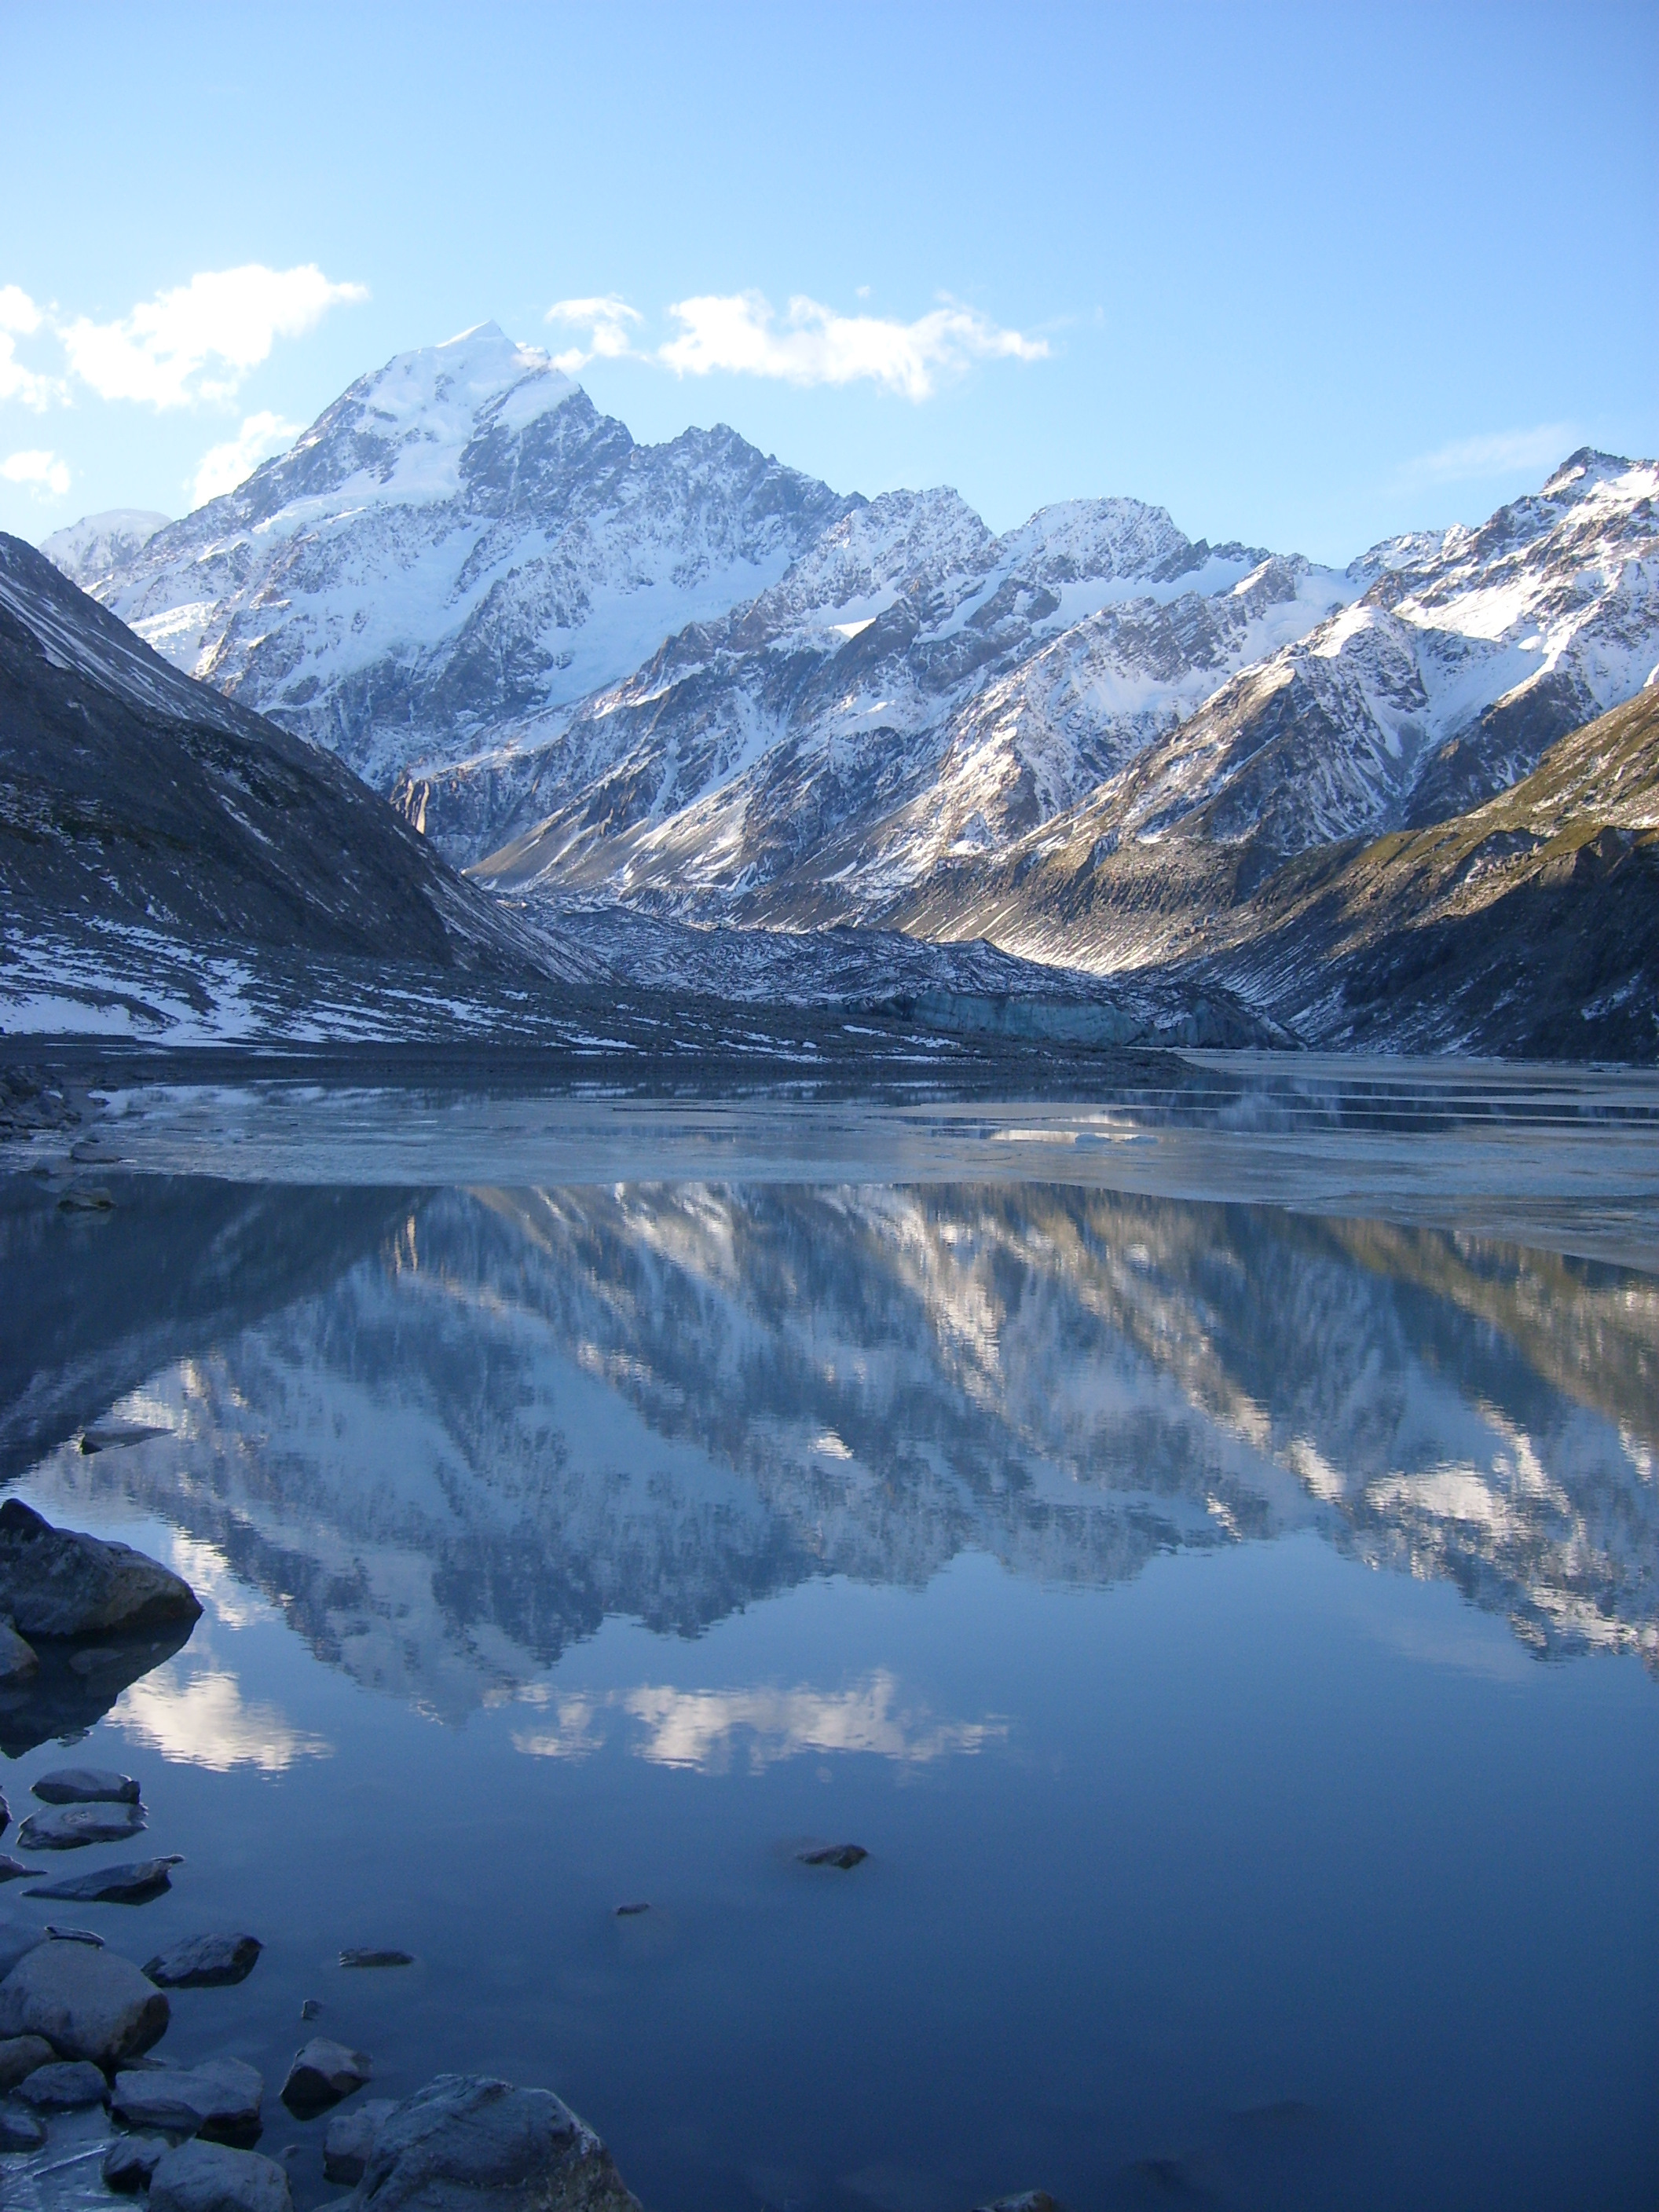 Mount Cook. Photo from Wikimedia Commons.